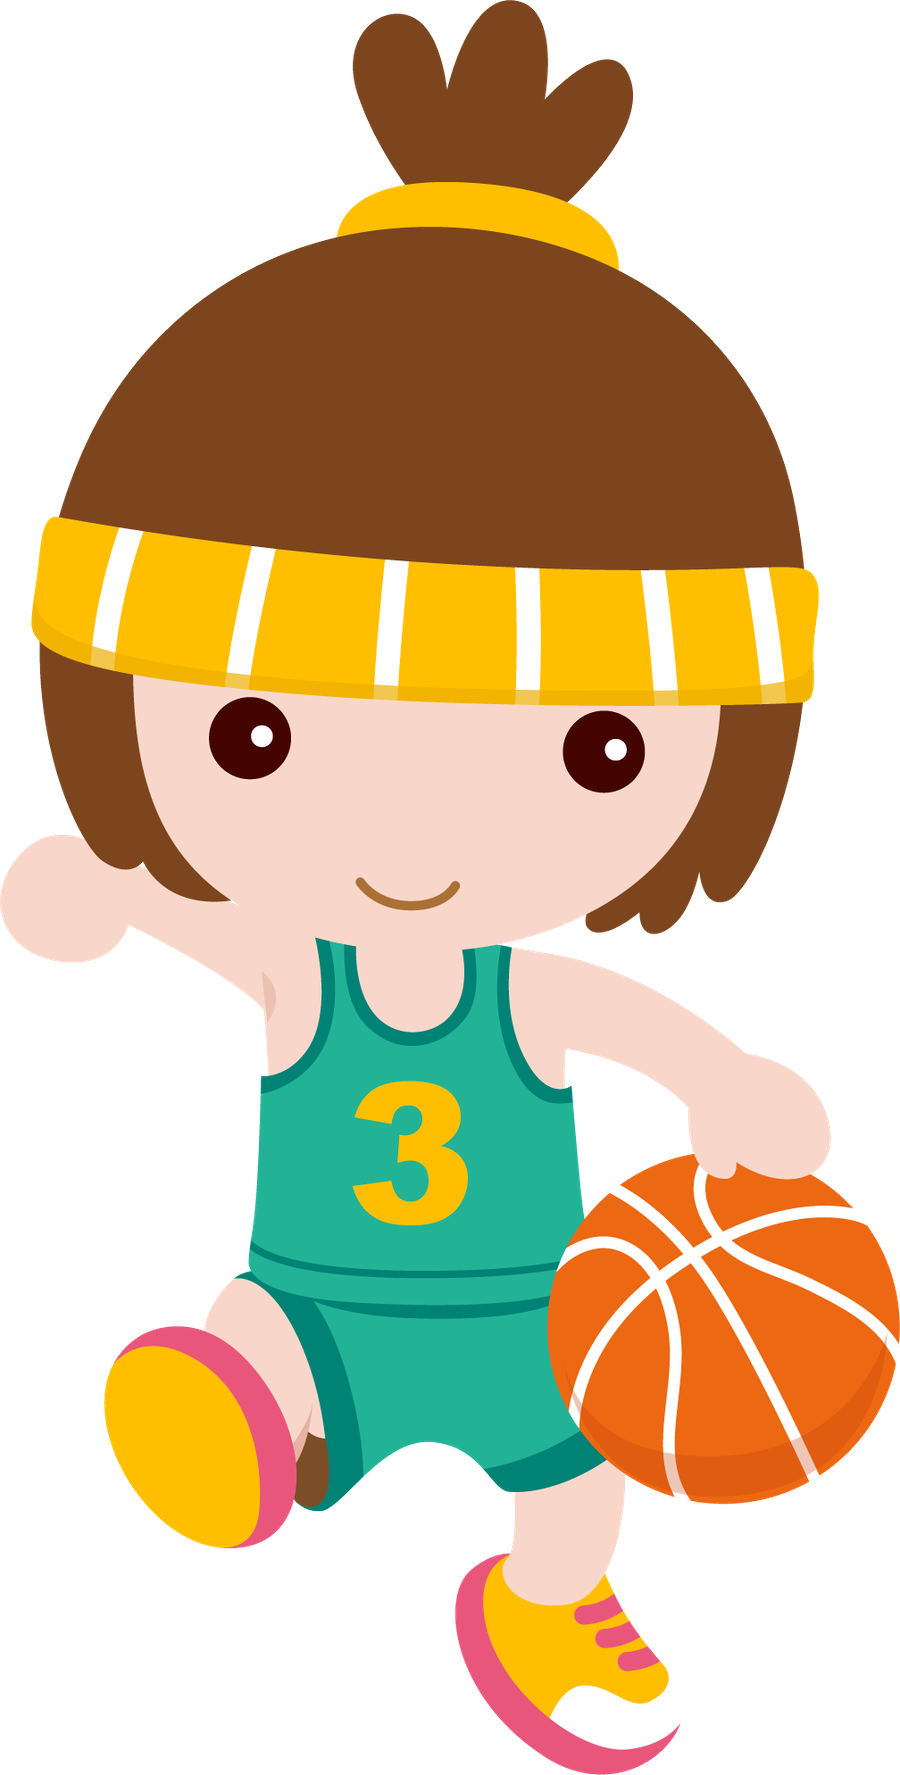 Baby basketball clipart jpg library Basquete - Minus | alreadyclipart - sports; | Pinterest jpg library